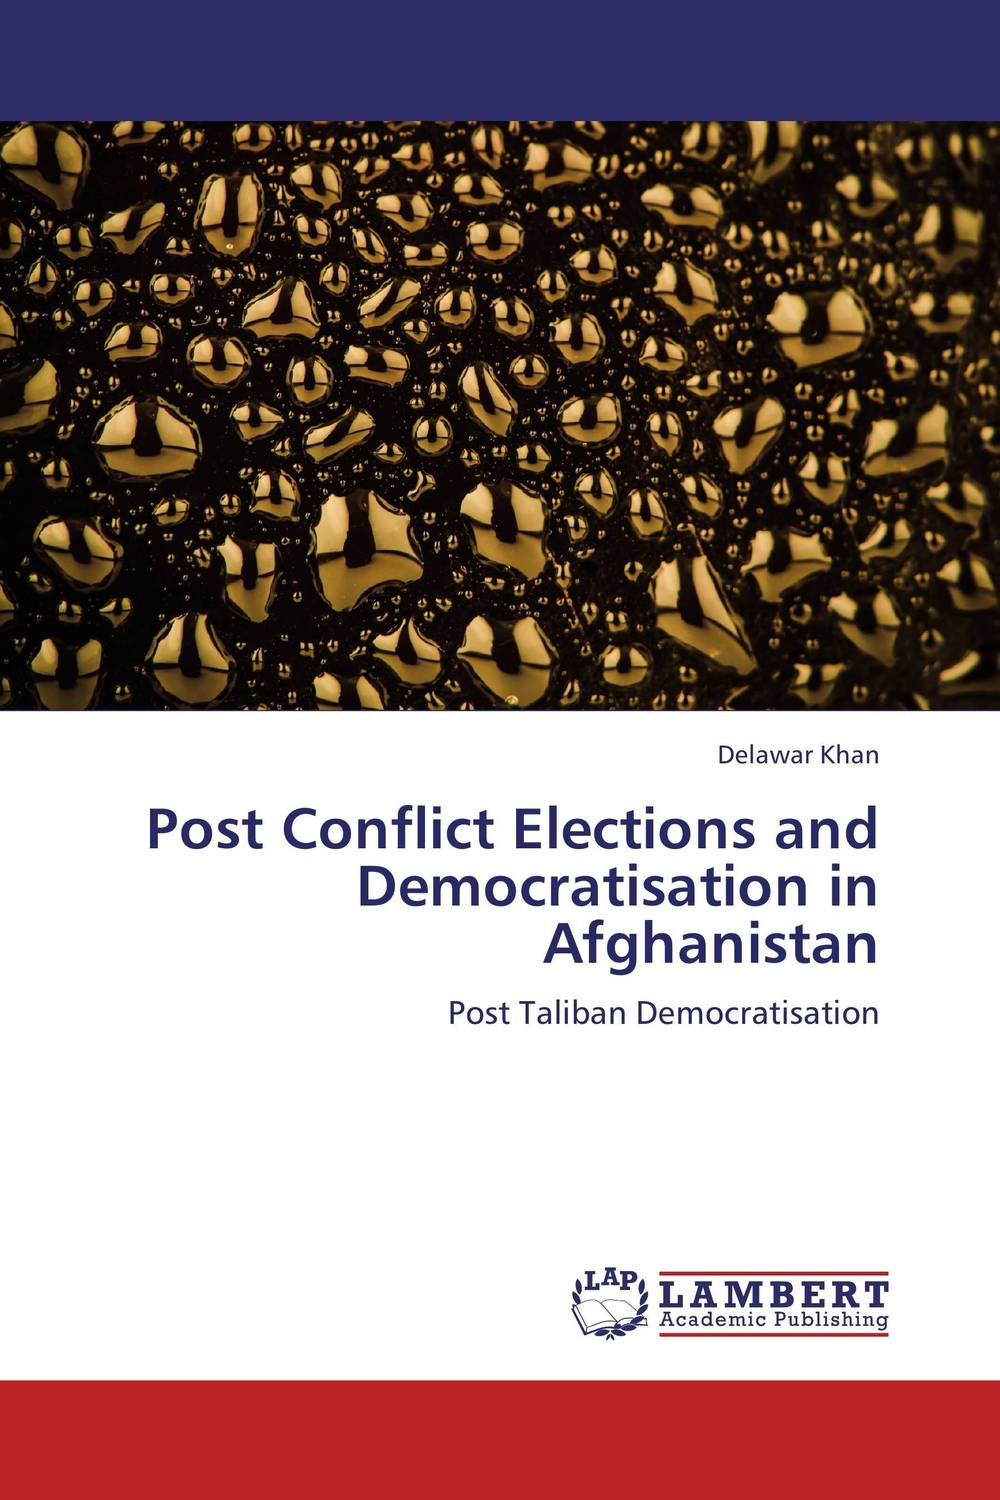 Post Conflict Elections and Democratisation in Afghanistan democracy in america nce